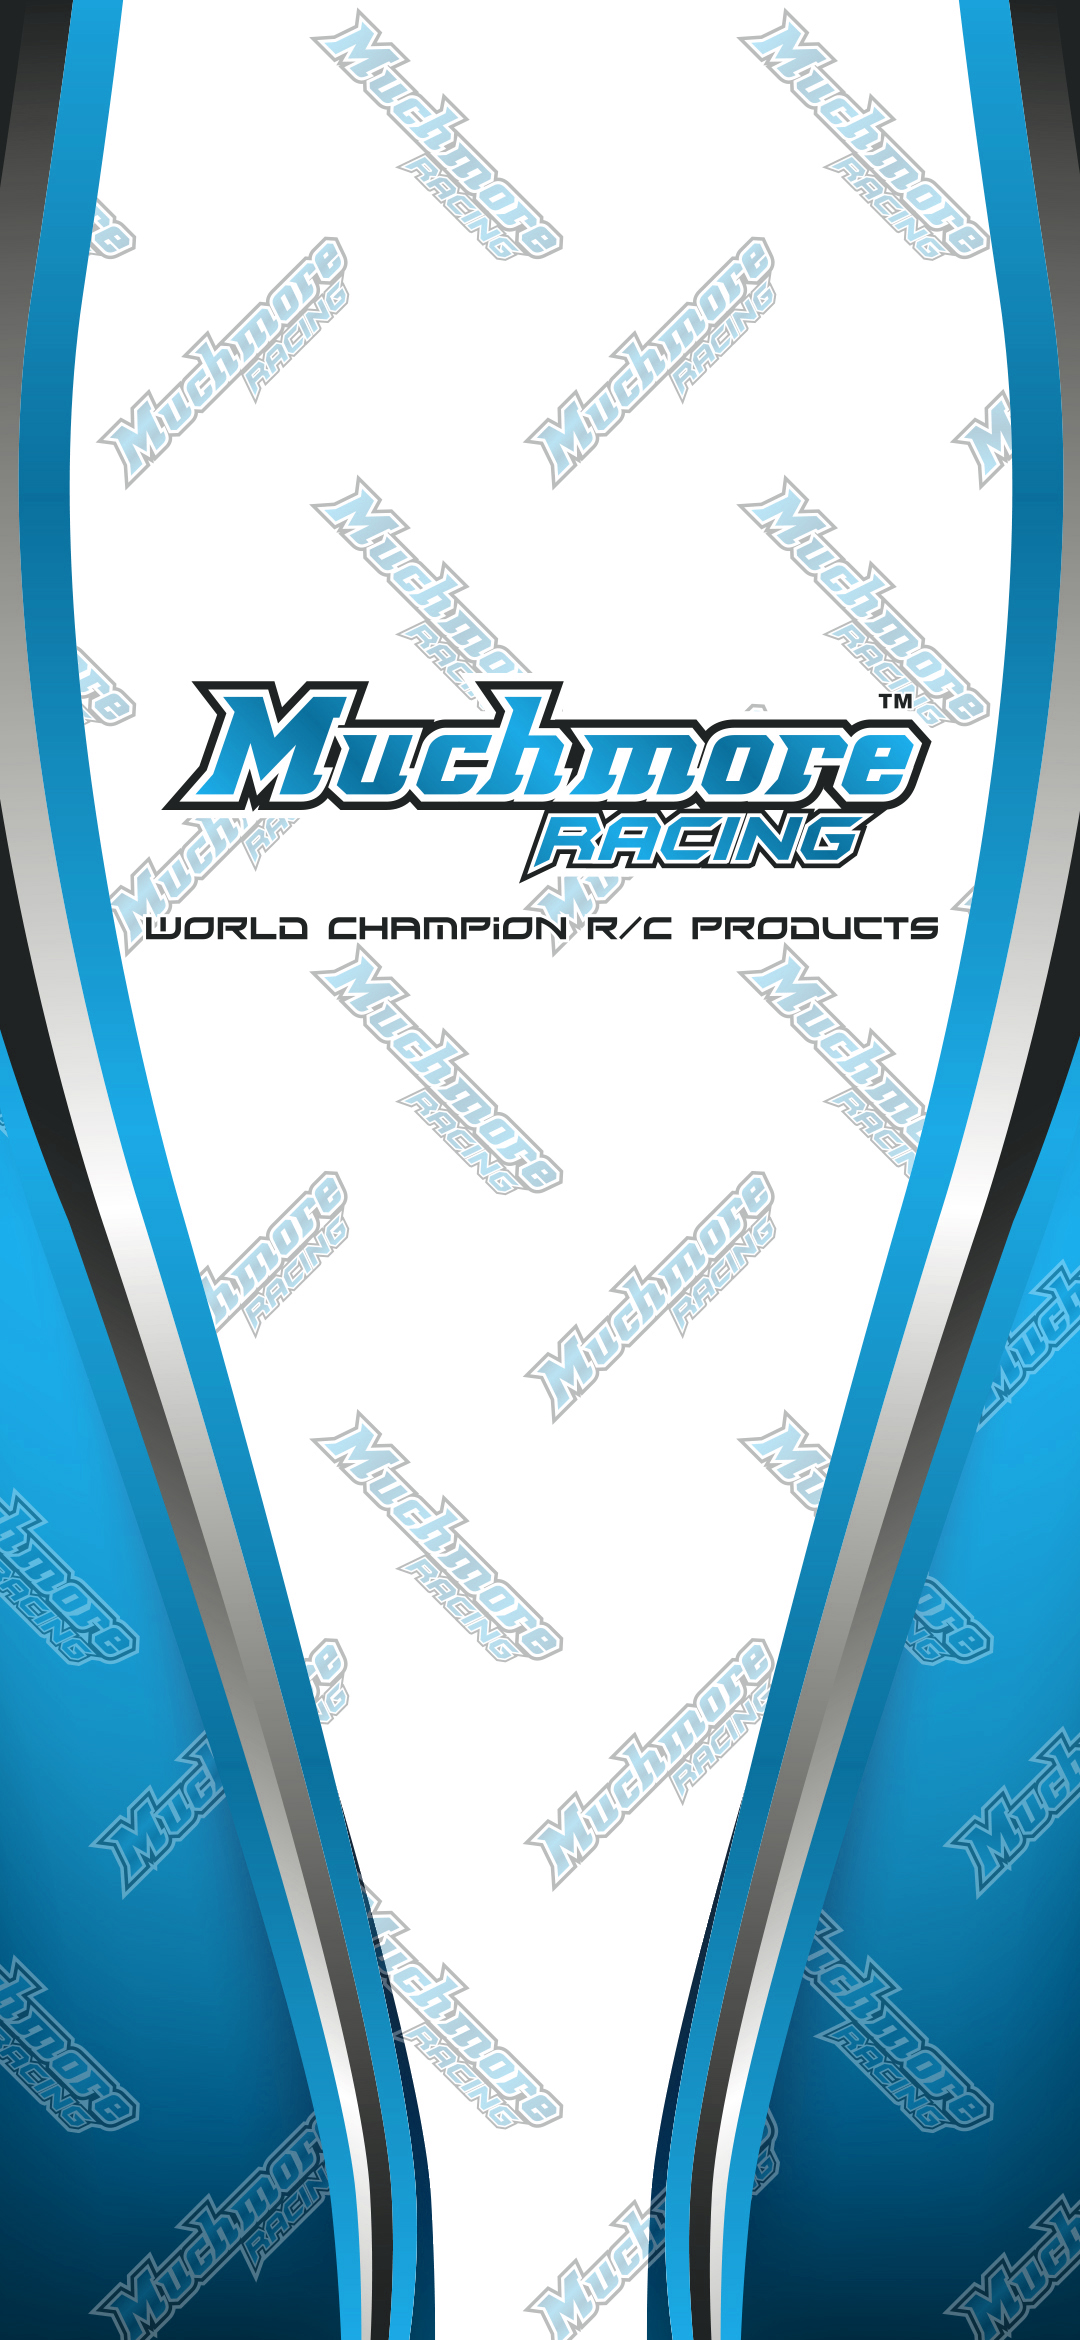 MuchmoreRacing_Wallpaper_Blue_Ver_LG_195by9-ratio.JPG